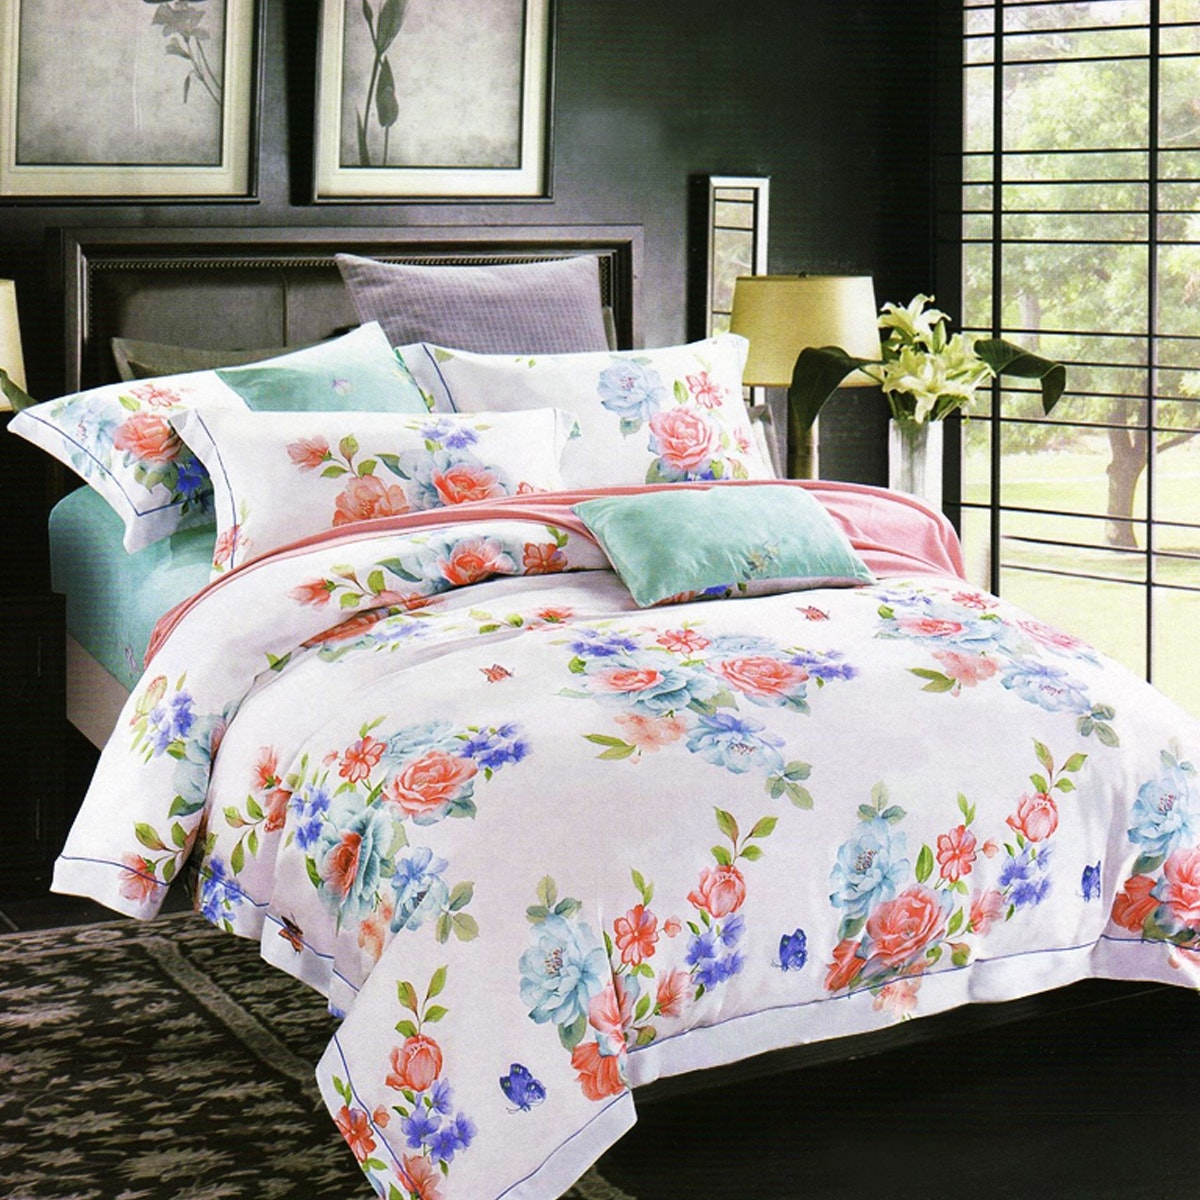 Sleep Buddy Set Sprei dan Bed Cover White Floral Cotton Sateen 160x200x30